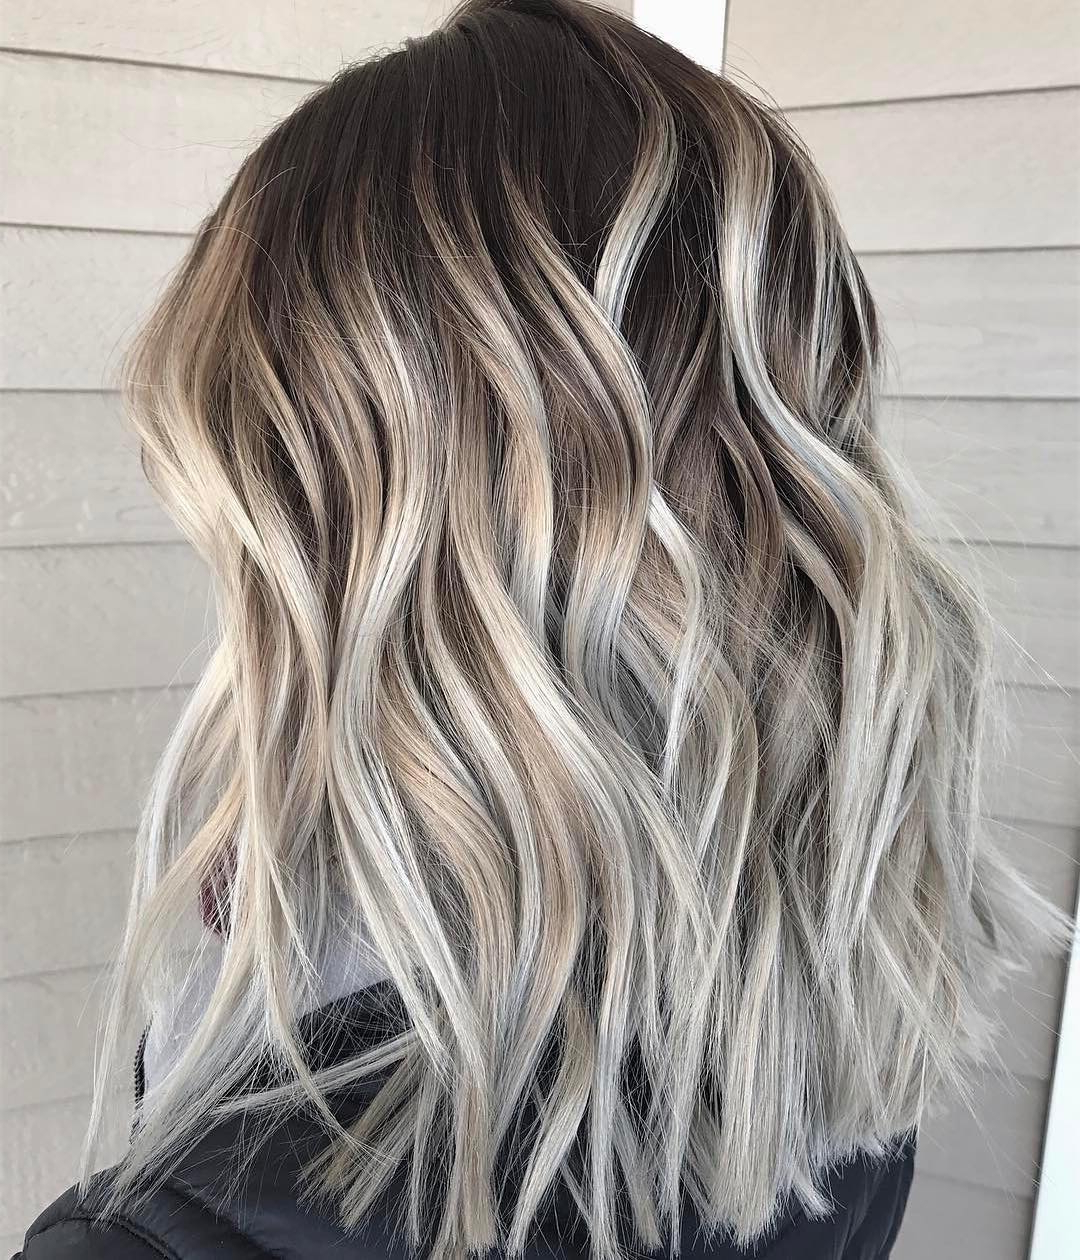 2018 Medium Hairstyles For Grey Hair With 10 Best Medium Hairstyles For Women – Shoulder Length Hair Cuts (View 9 of 20)